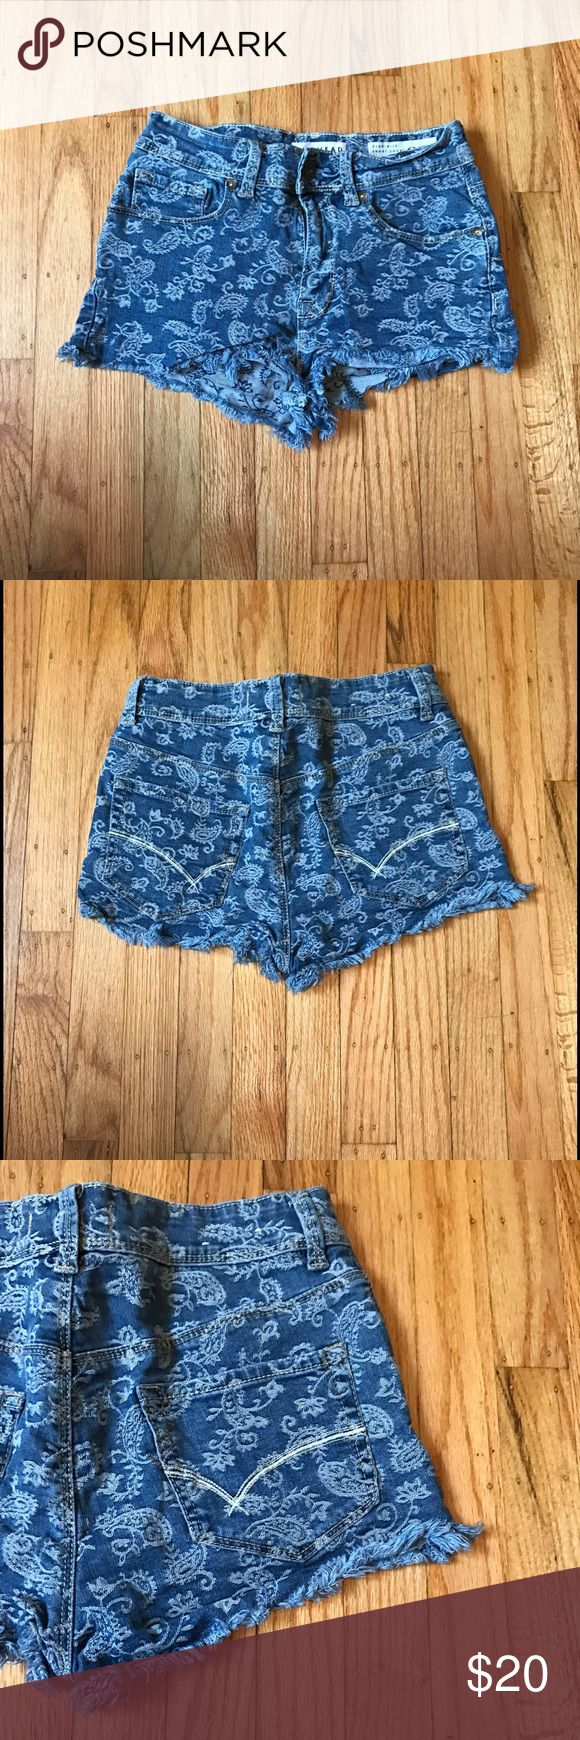 PacSun High-Rise Short Short Has floral print. Size 5 on the label, but fits size 26/27. Cheeky! No trades. Discounts on bundles with 3+ items. PacSun Shorts Jean Shorts